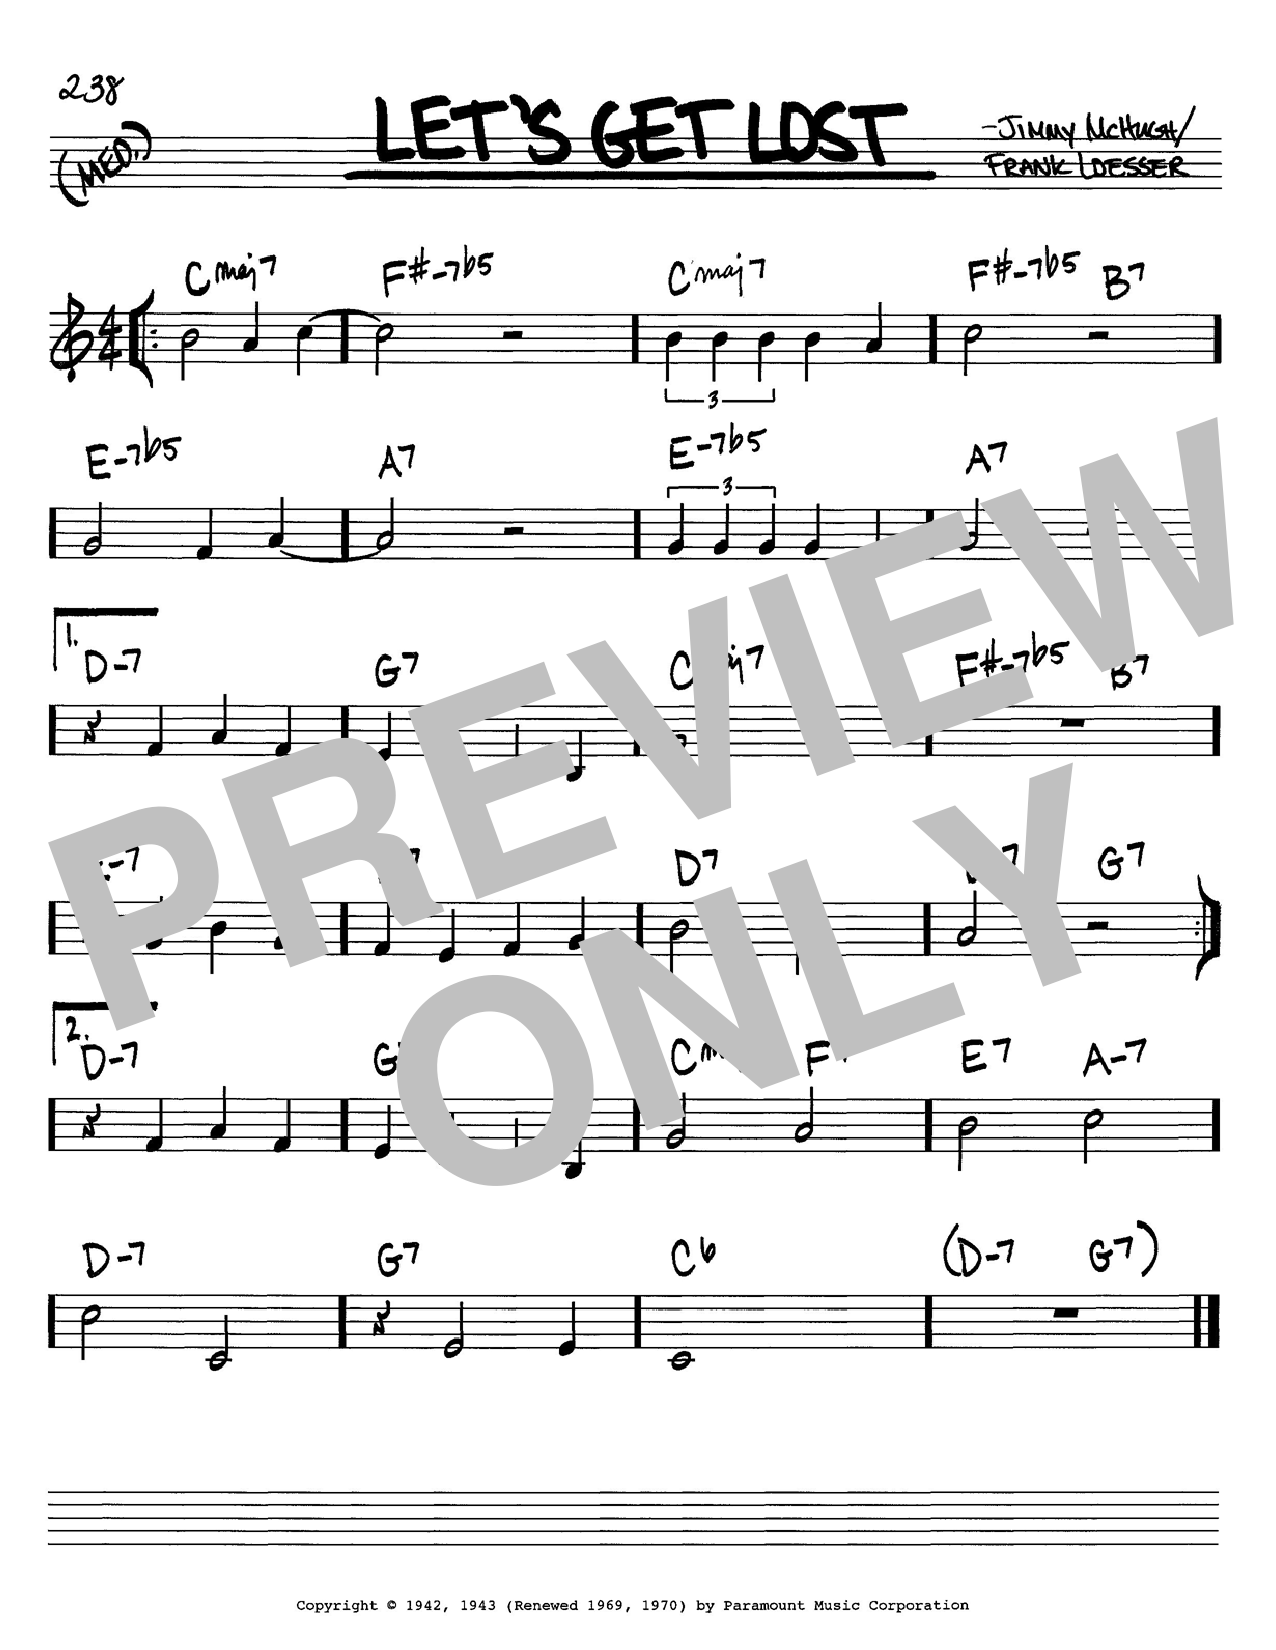 Frank Loesser Let's Get Lost sheet music notes and chords. Download Printable PDF.